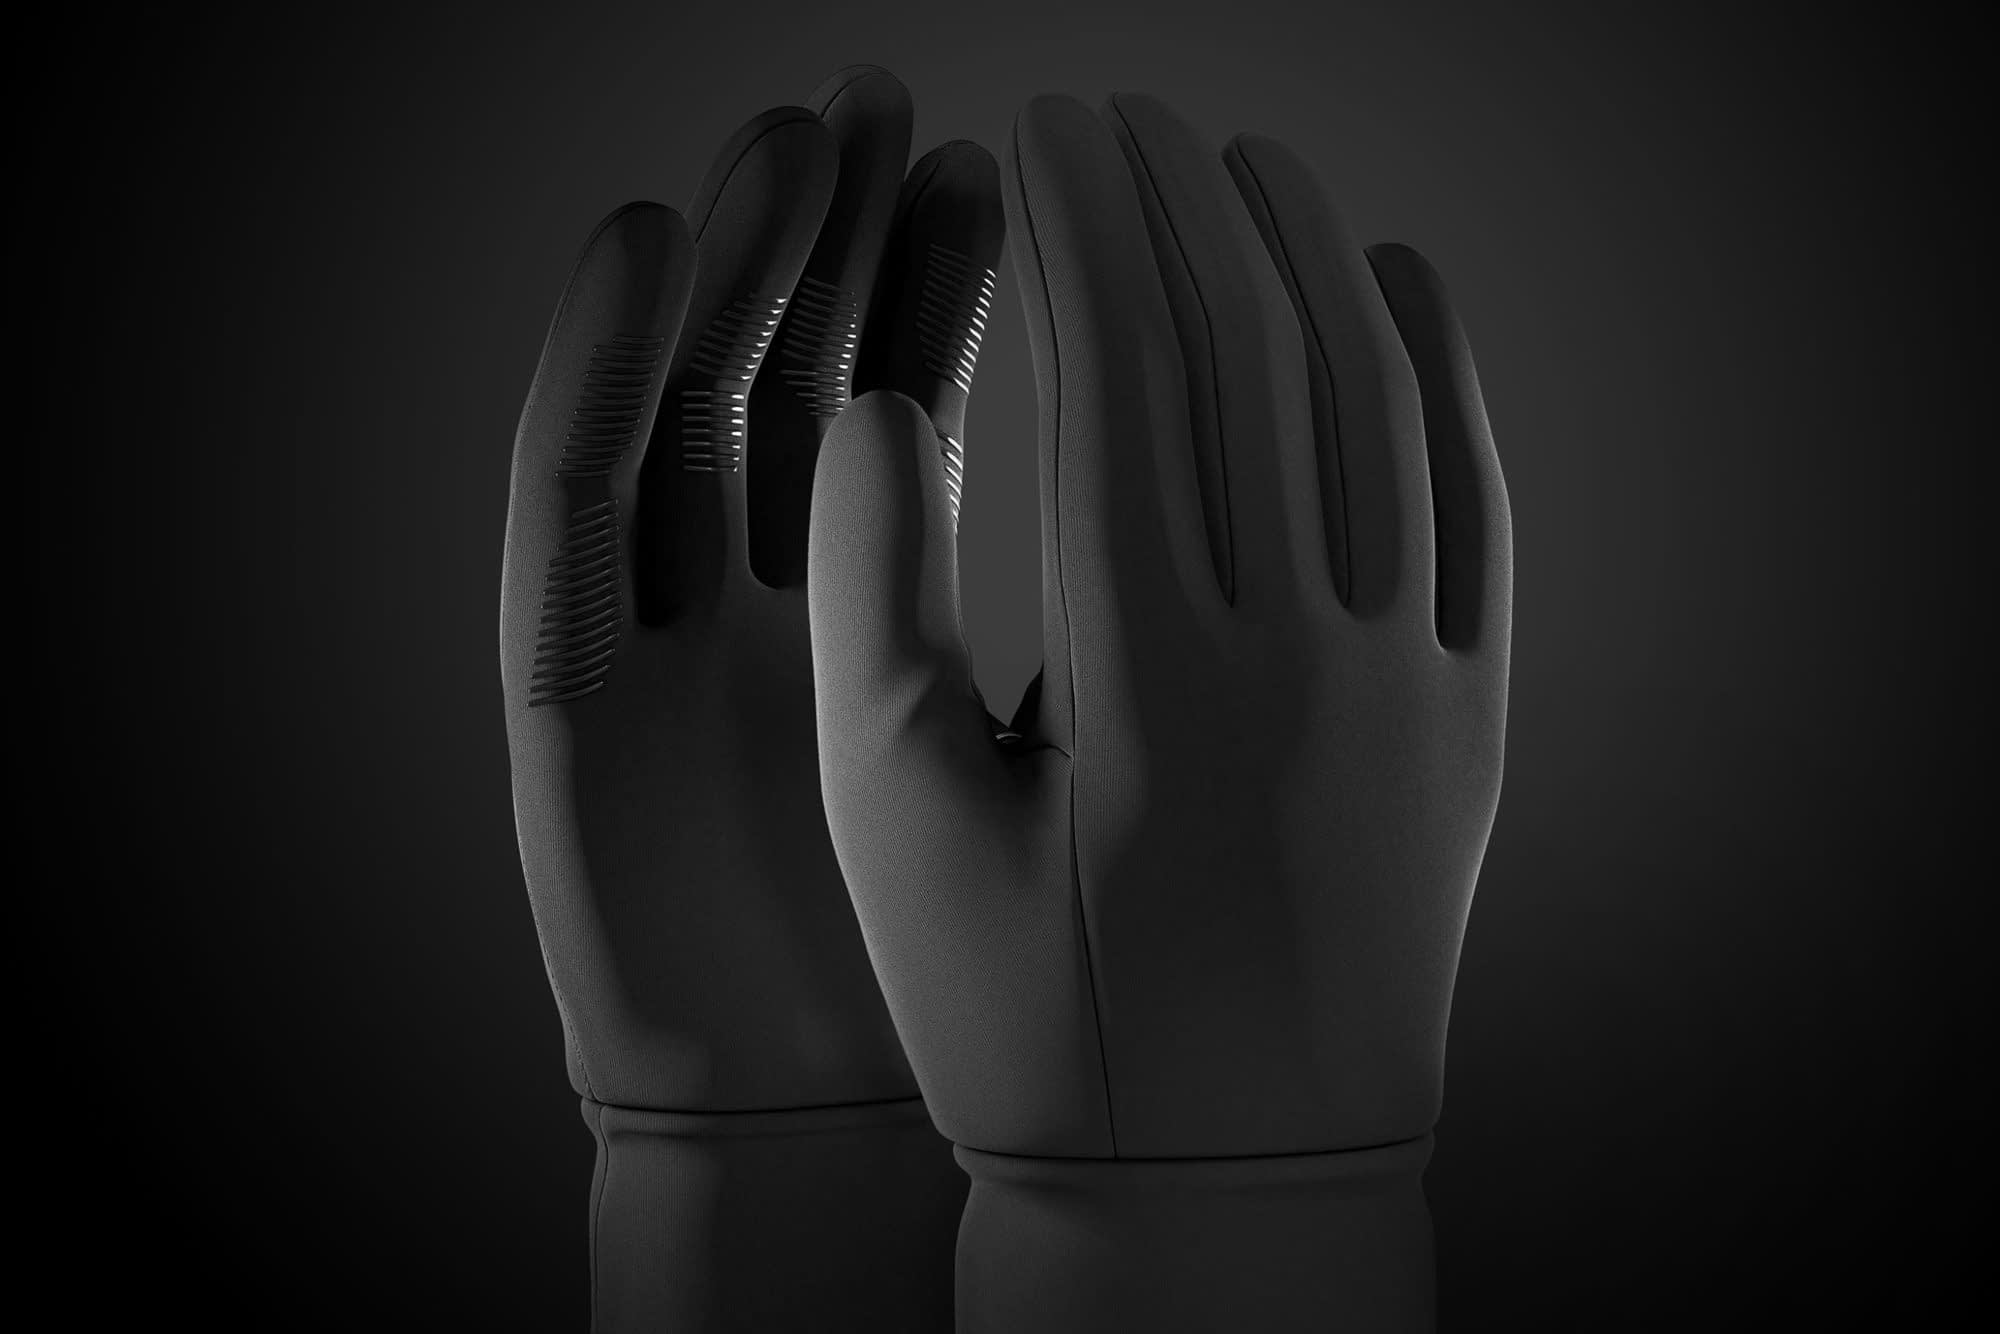 Double Insulated Touchscreen Gloves 09